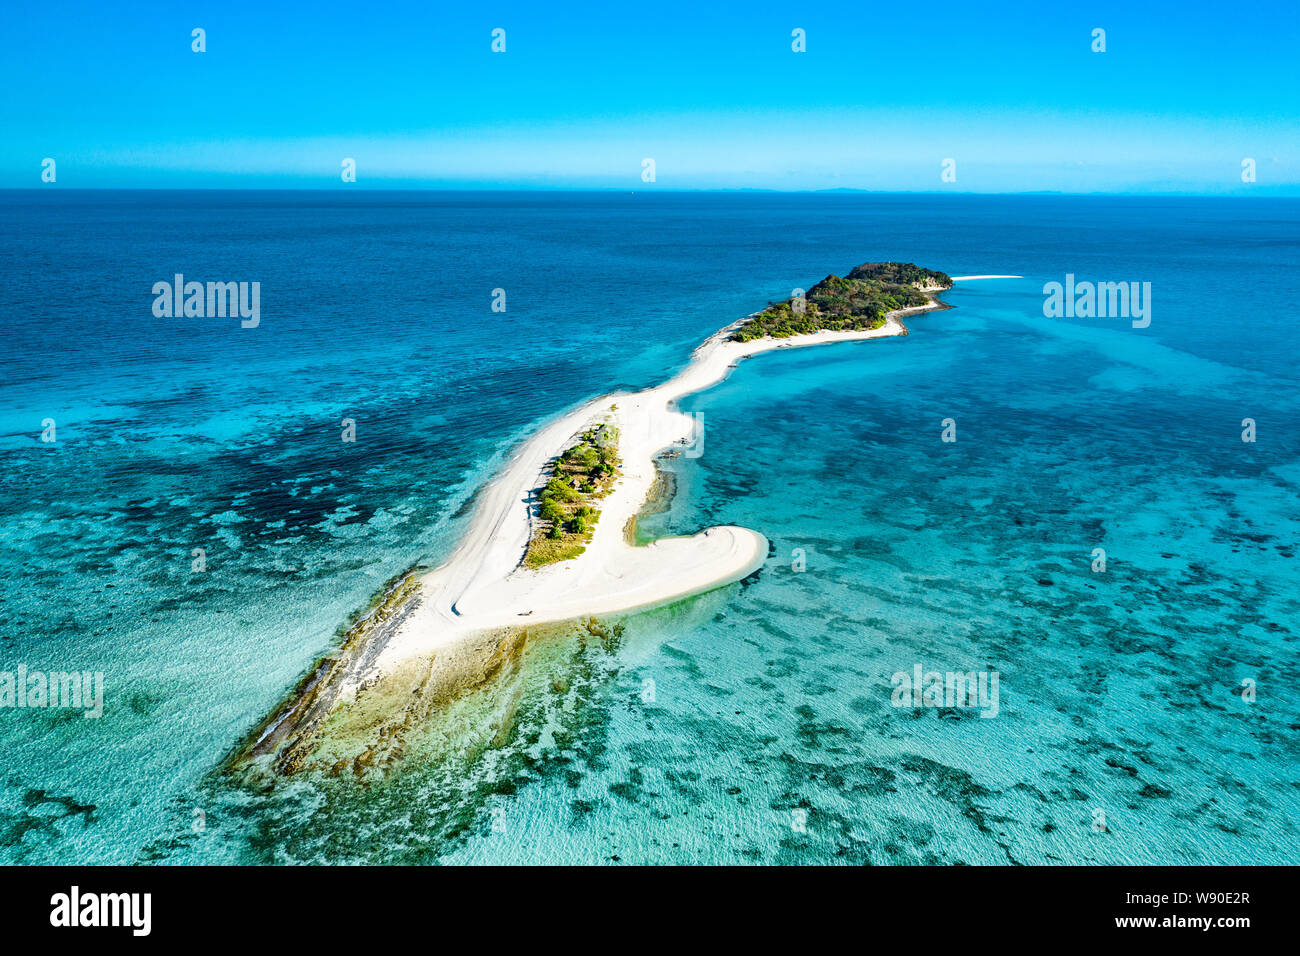 Truly amazing tropical island in the middle of the ocean. Aerial view of an island with white sand beaches and beautiful lagoons Stock Photo